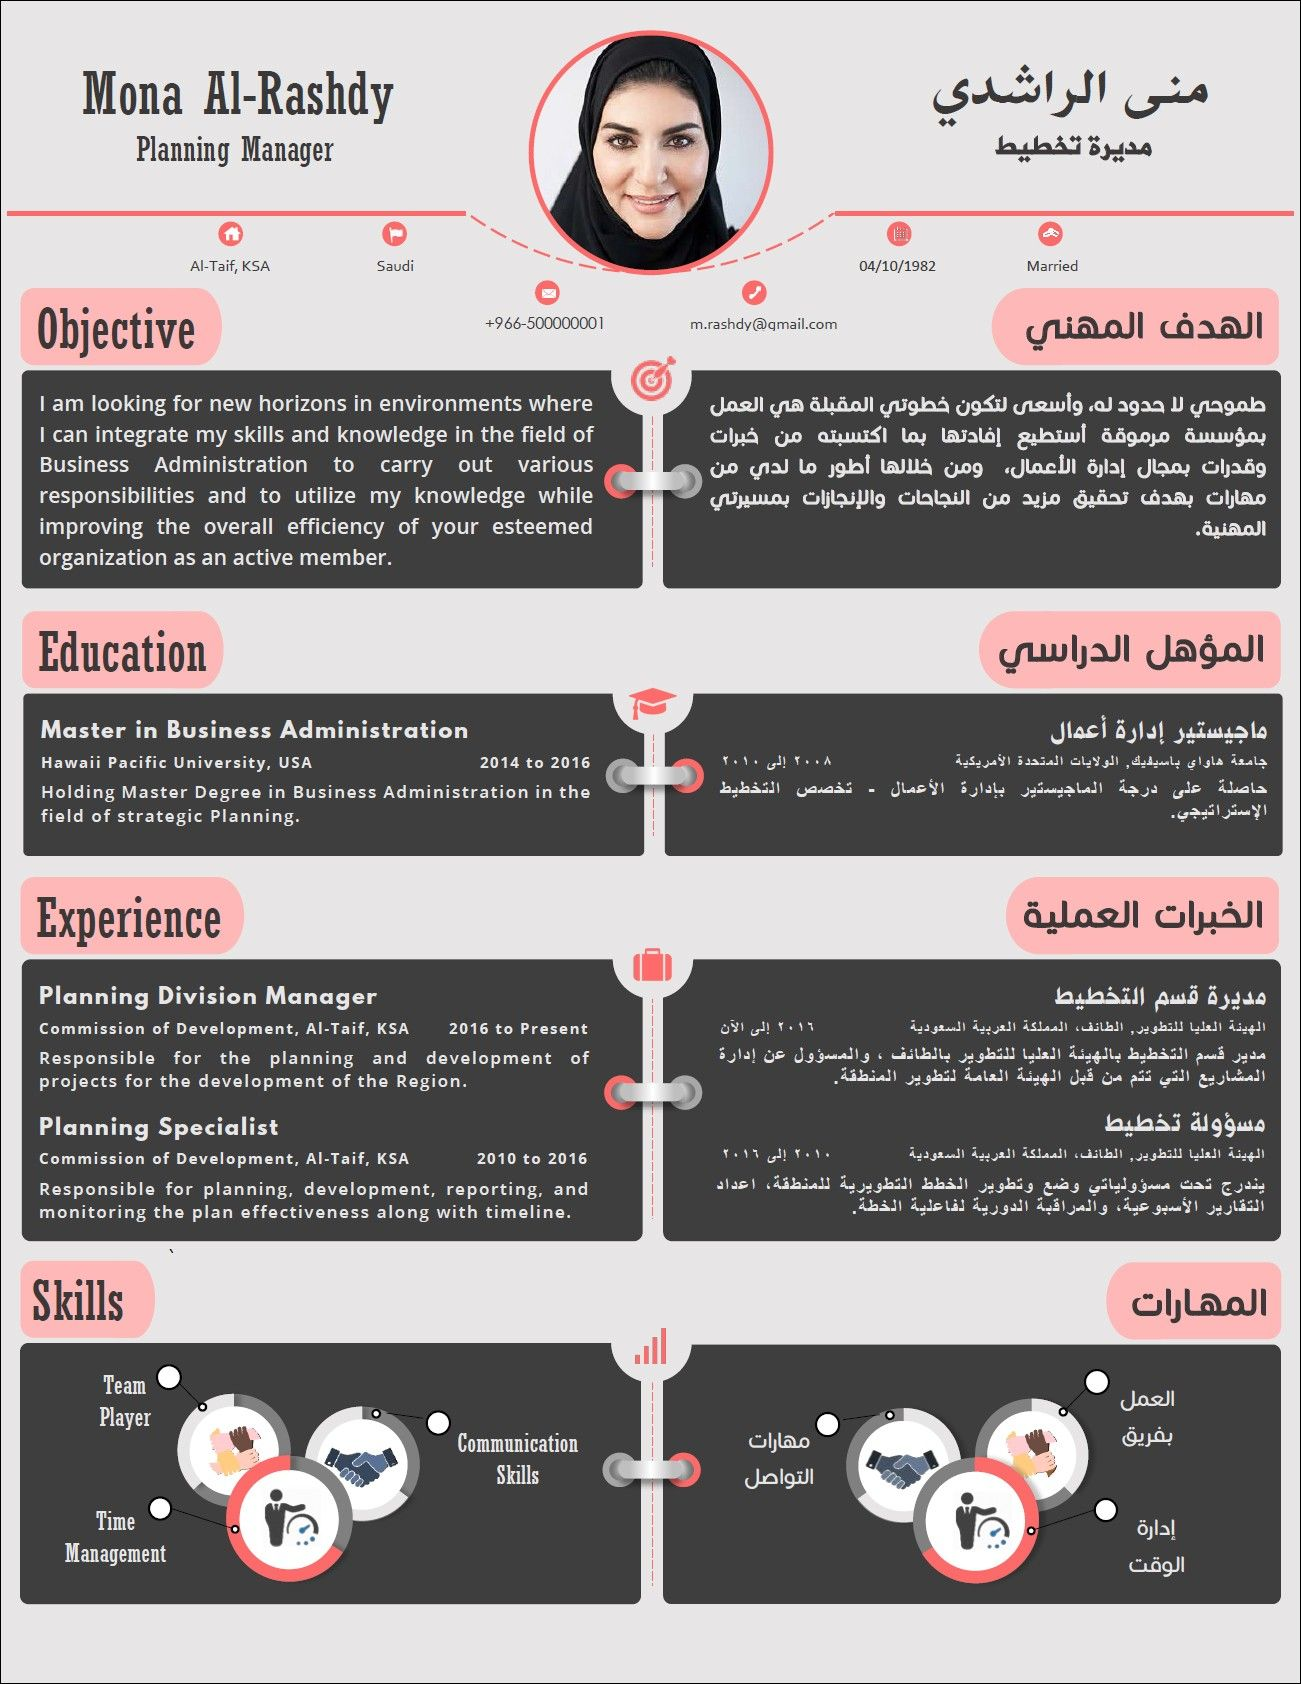 Bilingo Bilingual English Arabic Resume Template Resumes Mag Resume Templates Service Free Resume Template Word Resume Template Word Downloadable Resume Template